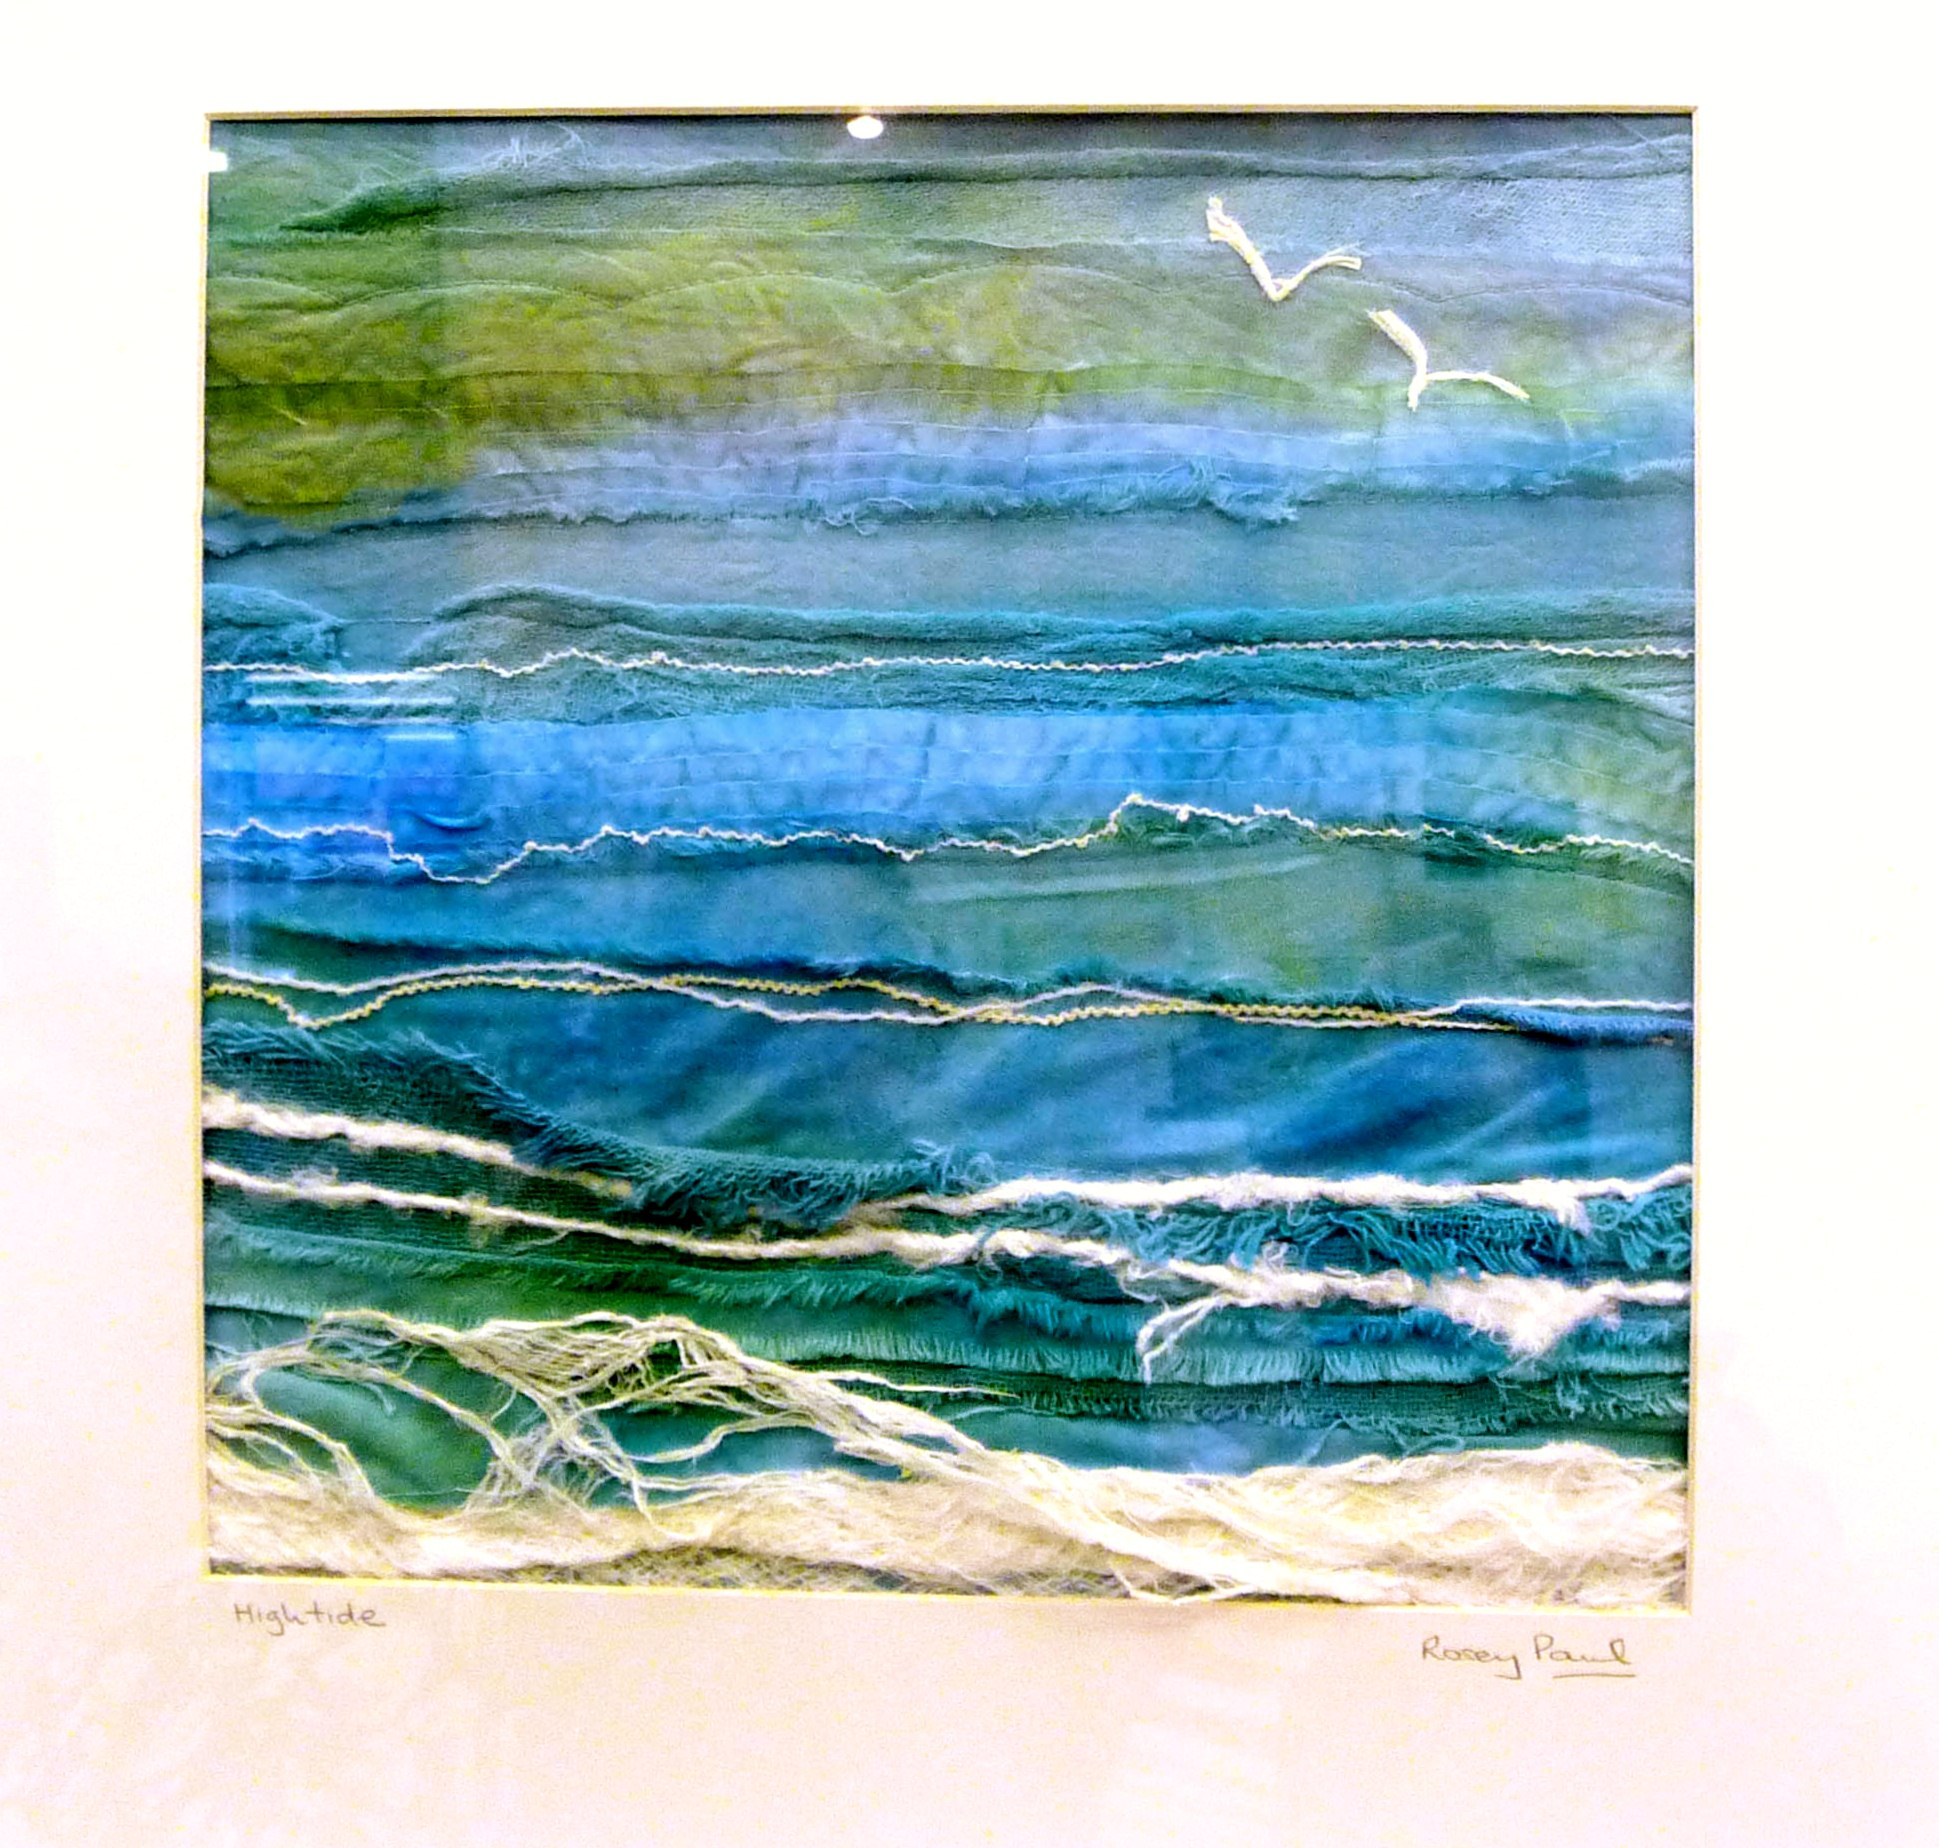 HIGH TIDE by Rosey Paul, textile